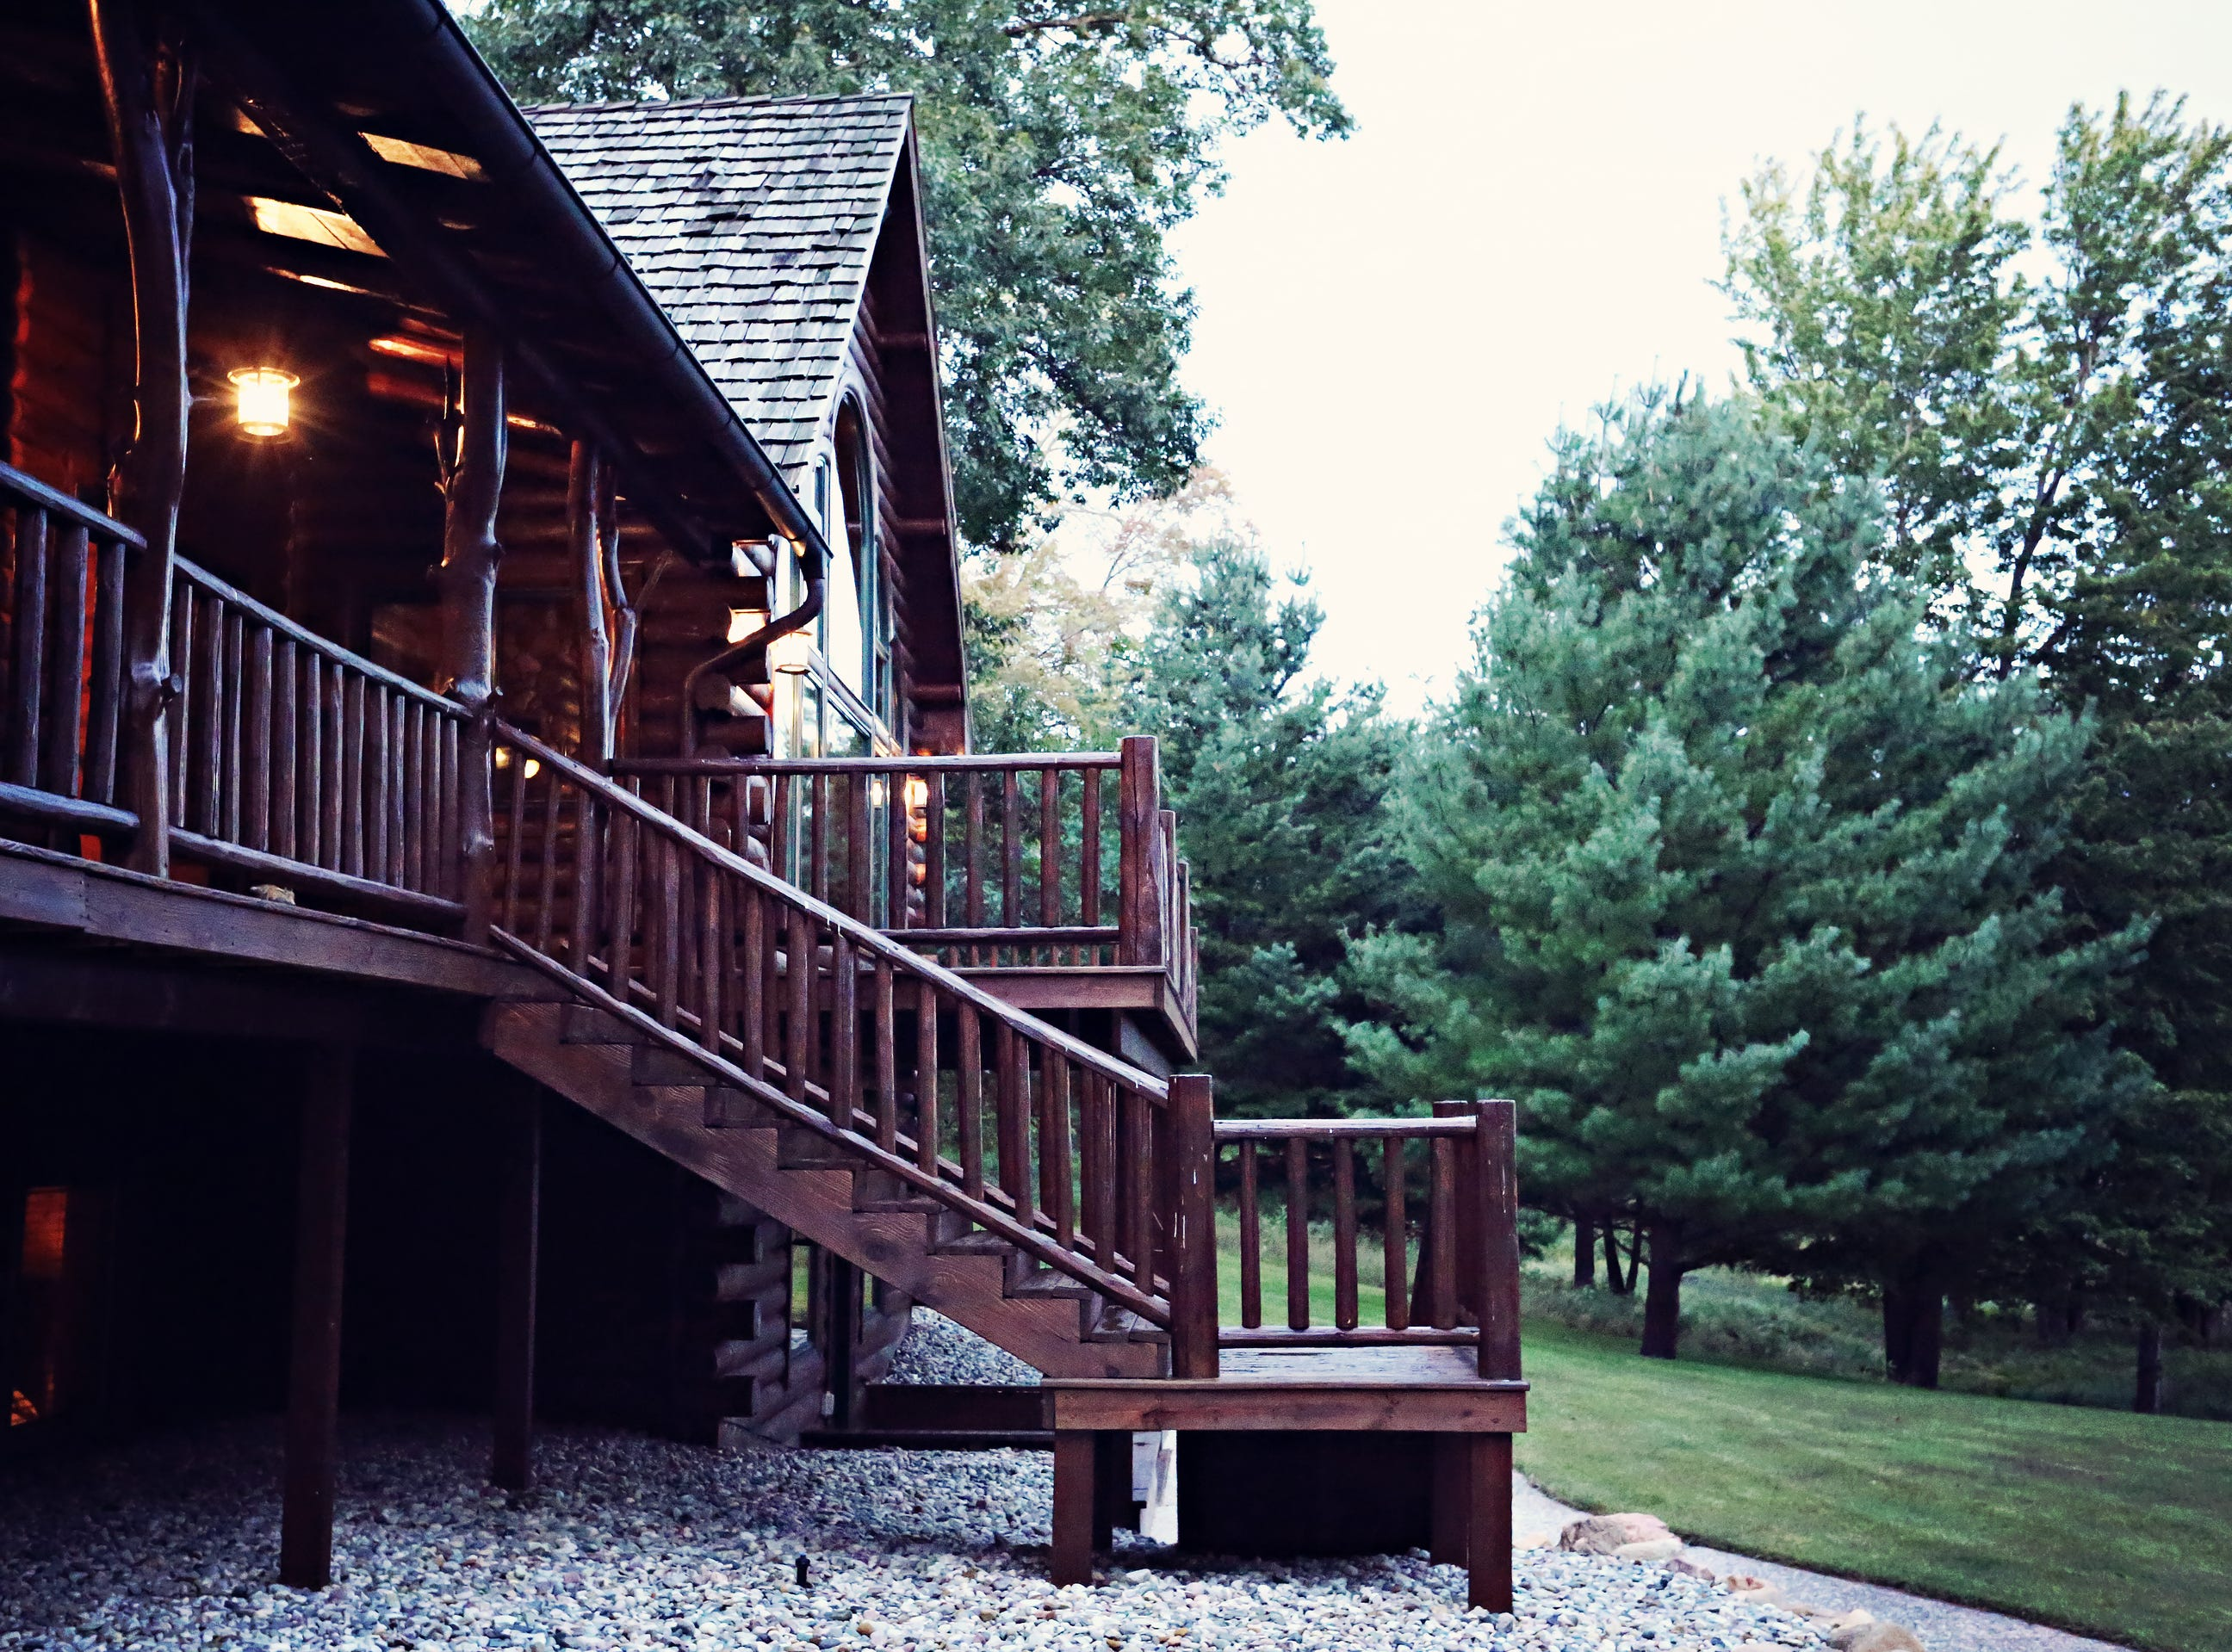 A Class III-registered deer ranch, the property is one of the largest privately owned parcels in Michigan.